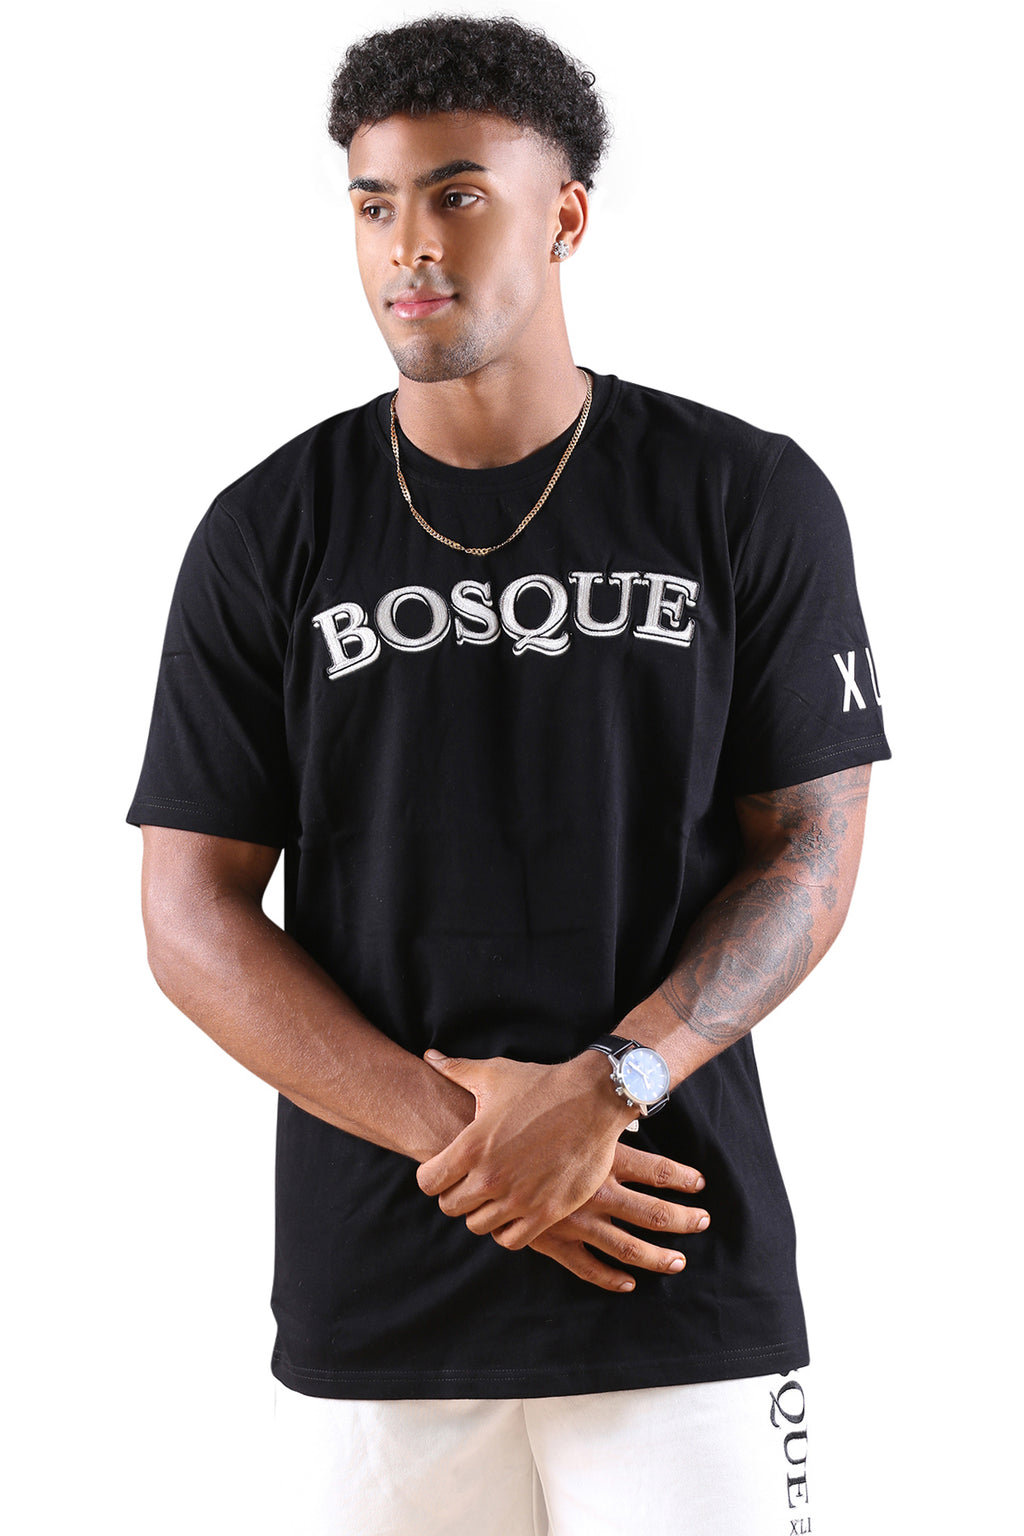 Bosque Prsto Tee Black/White